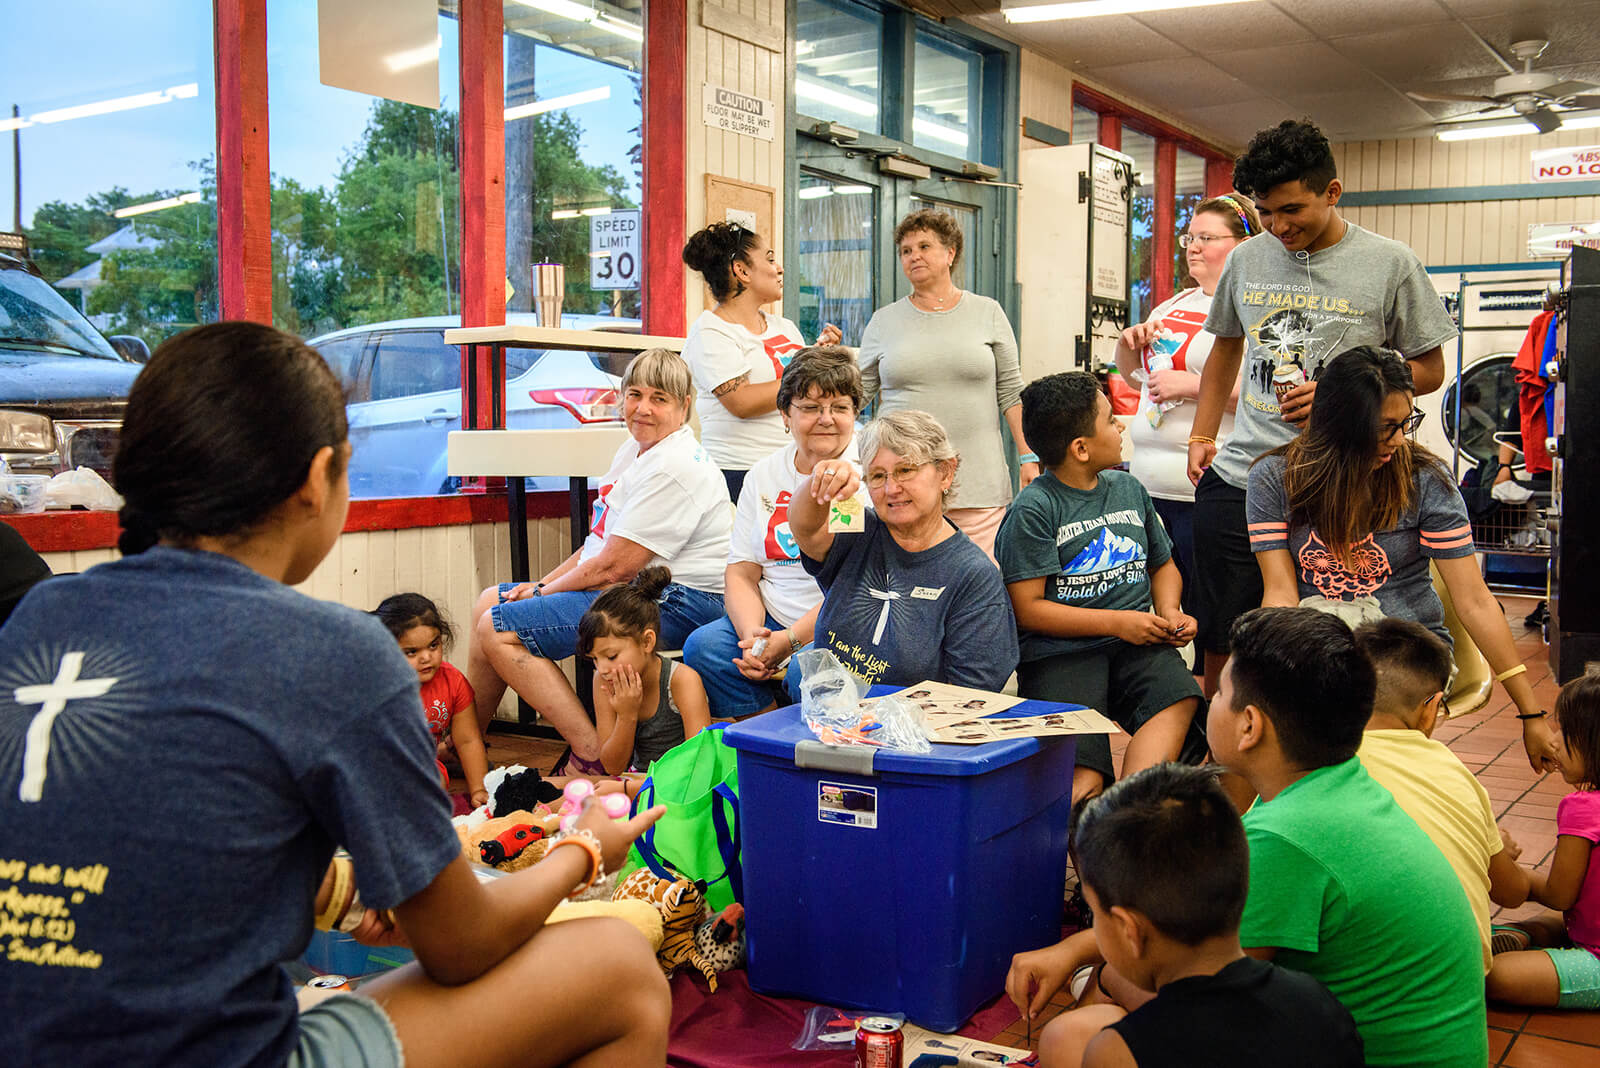 Volunteers from St. Paul Lutheran Church, San Antonio, hold a mini Sunday school lesson for children at August's Laundry Love event.